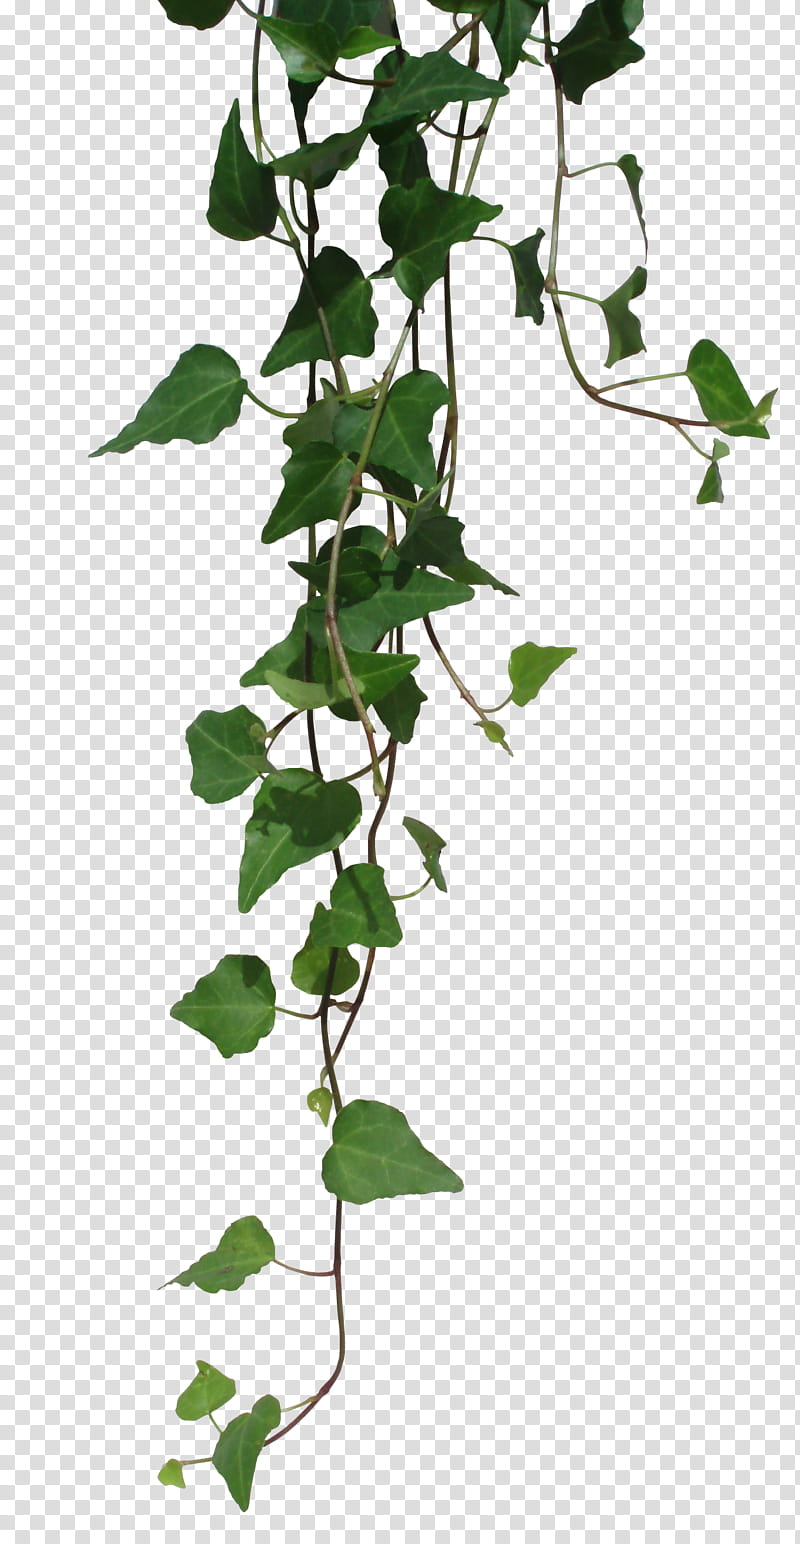 Hanging vines clipart graphic free RNDOM, green vines transparent background PNG clipart | HiClipart graphic free